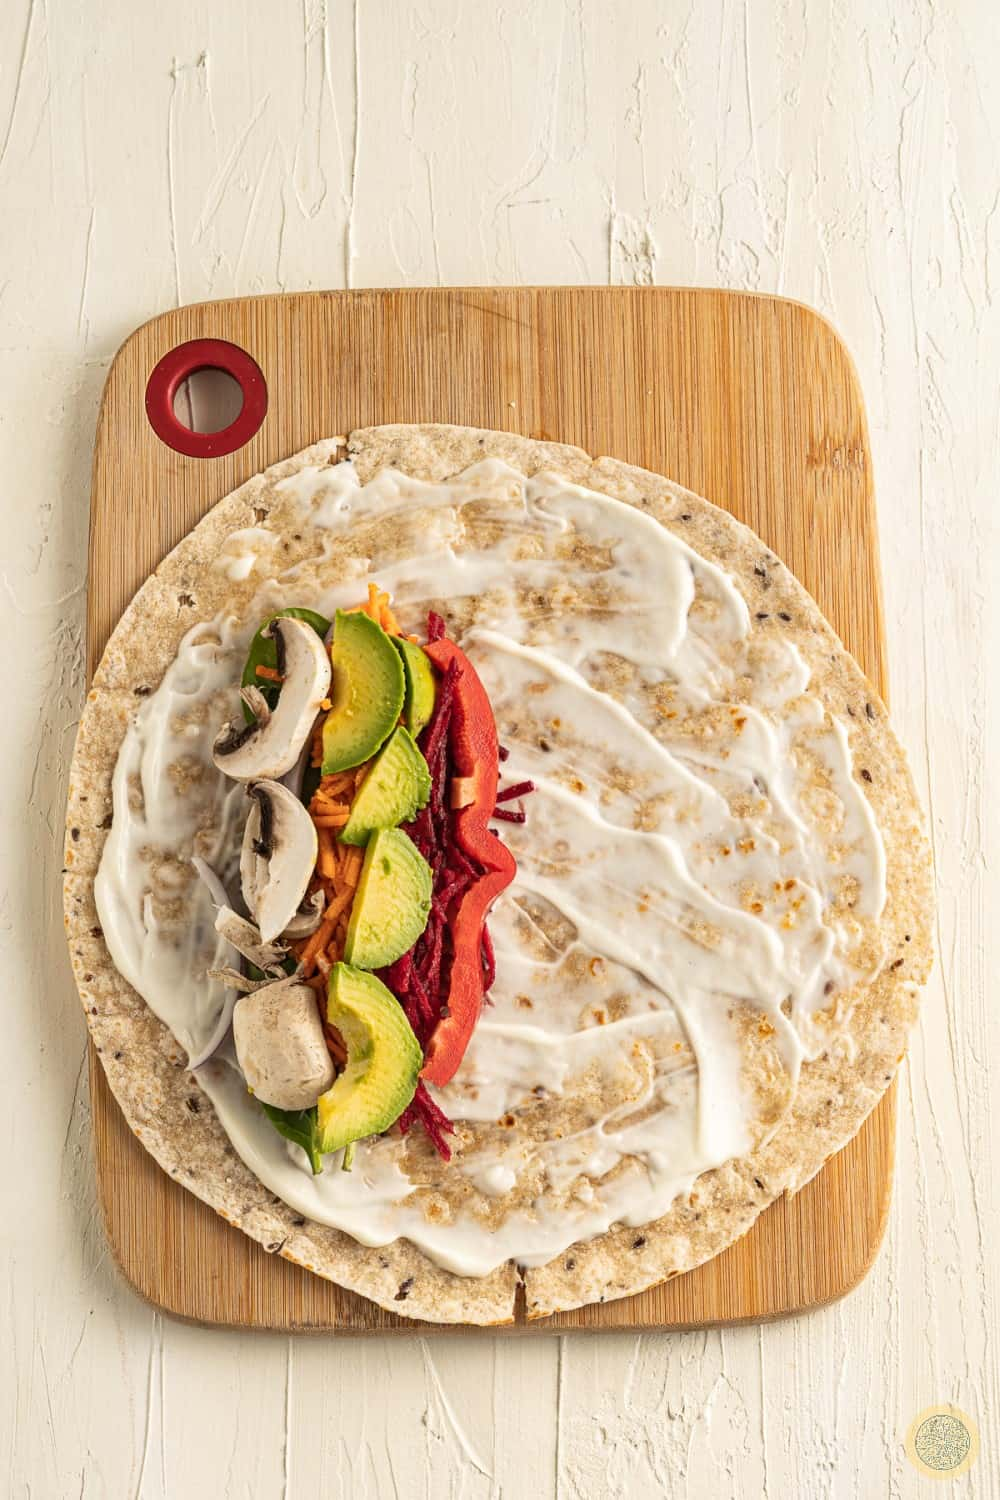 Add the ingredients on the tortilla